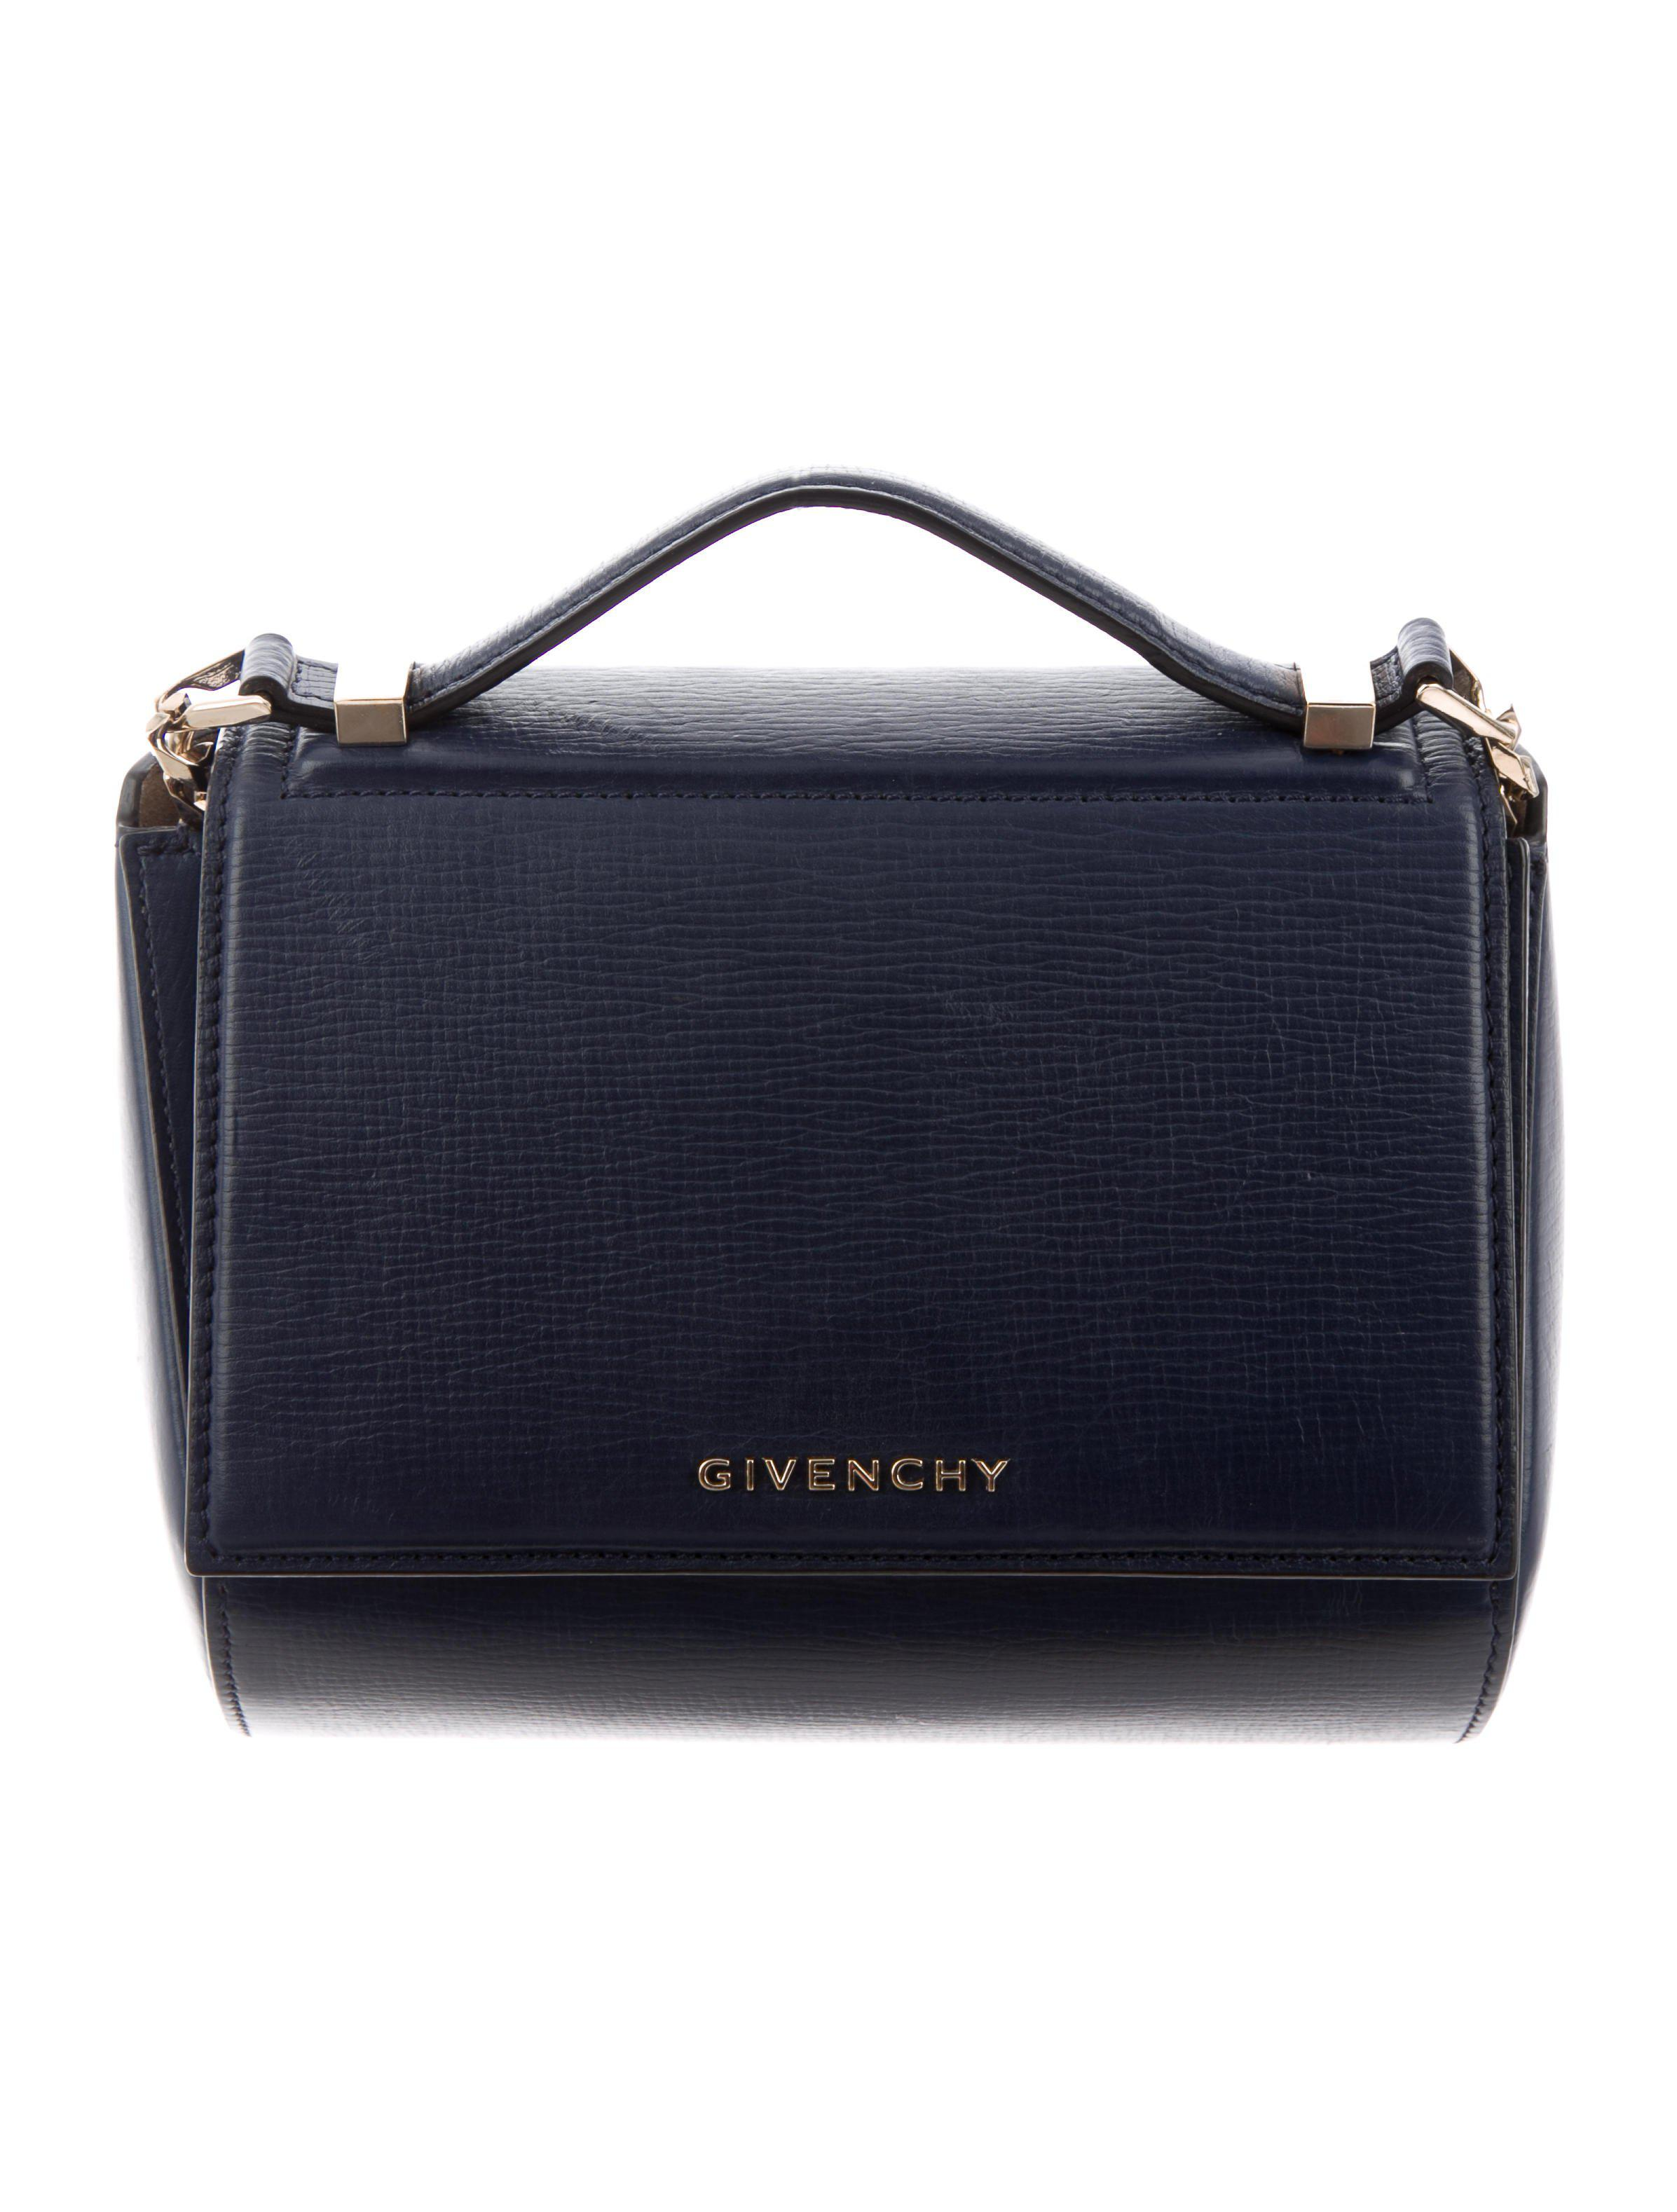 Givenchy - Metallic Mini Pandora Box Bag Navy - Lyst. View fullscreen 17b5b669648b1